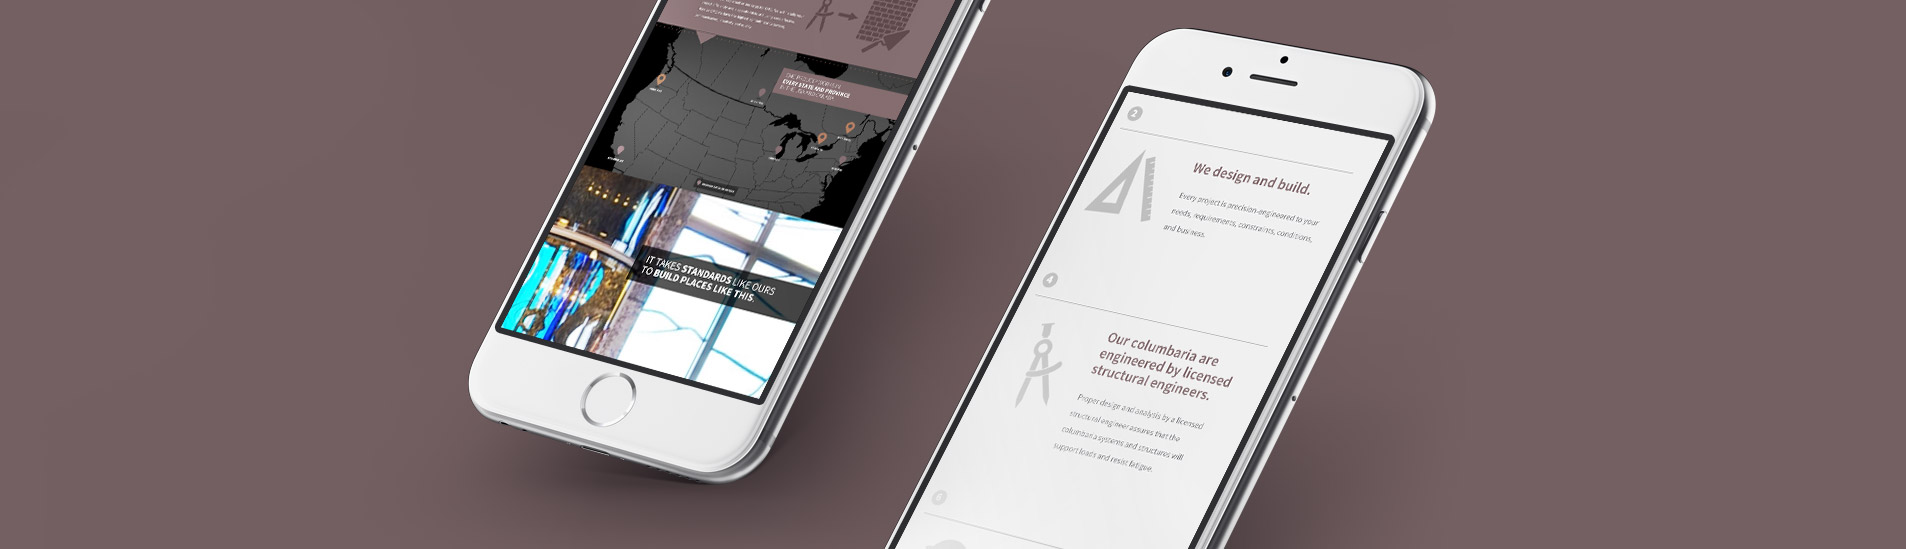 mobile website design for cmc